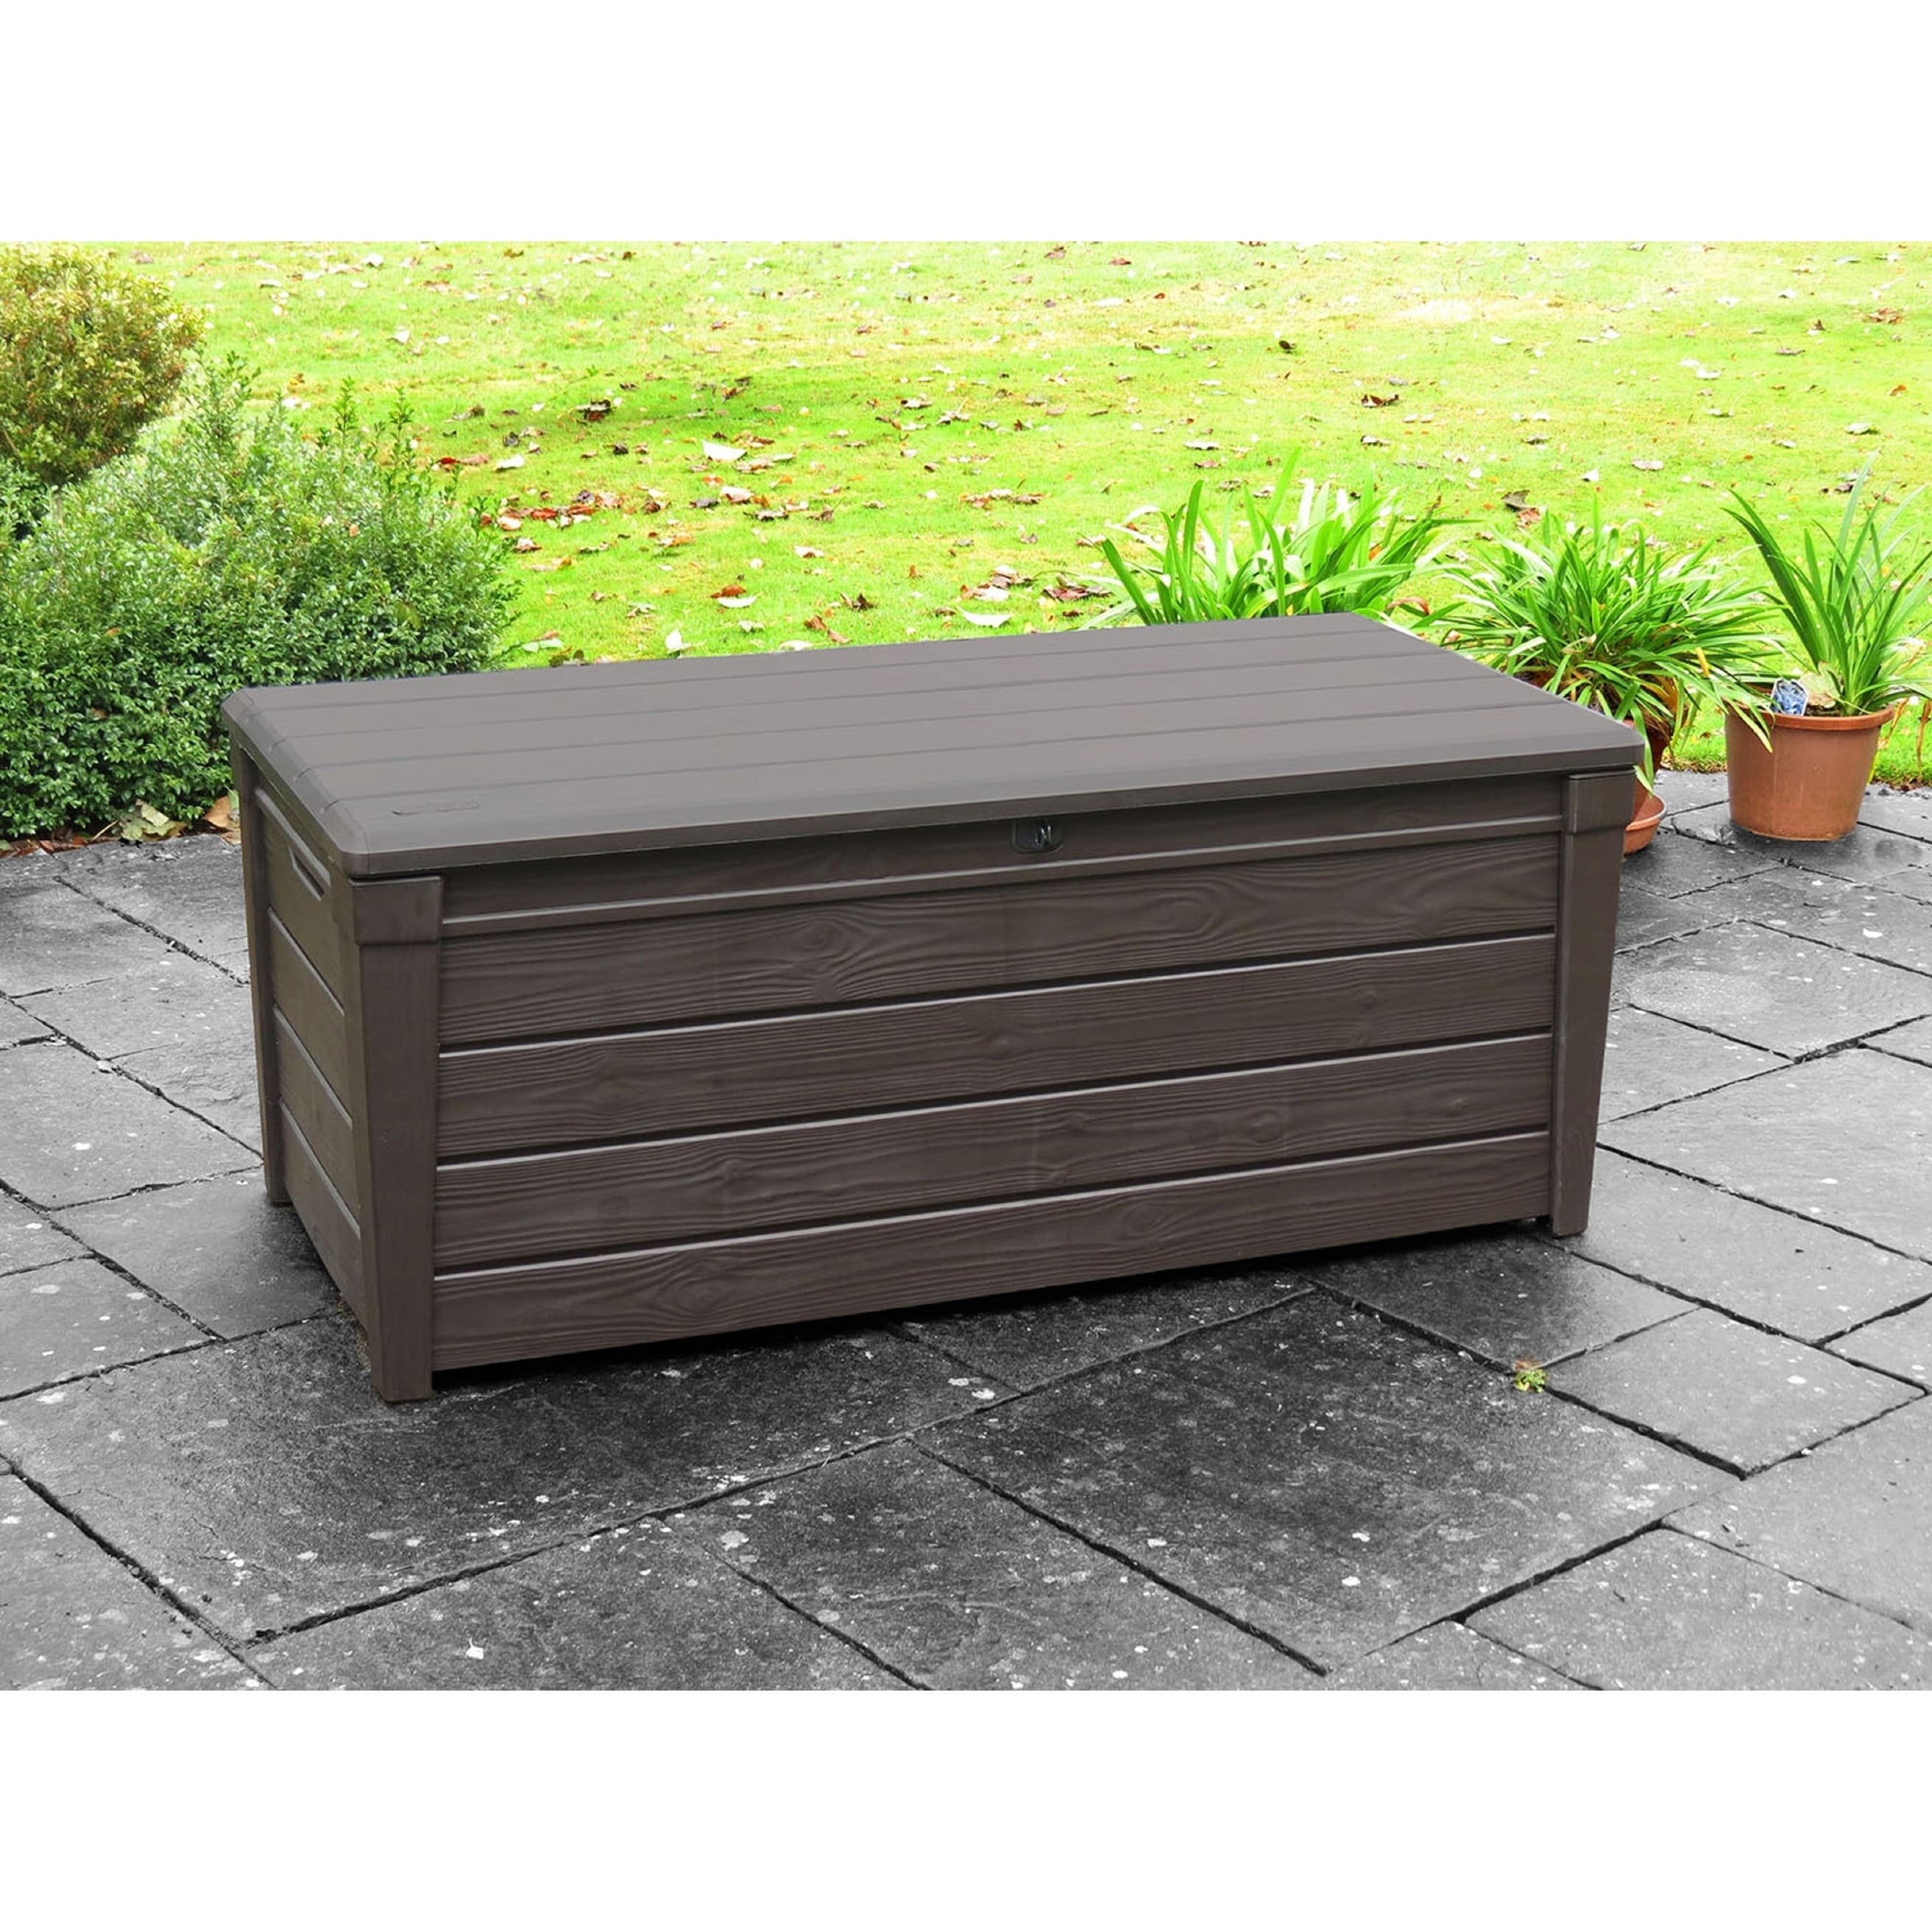 sxs metal picture and outdoor bunnings plastic styles trends ikea chairs the furniture best for industrial